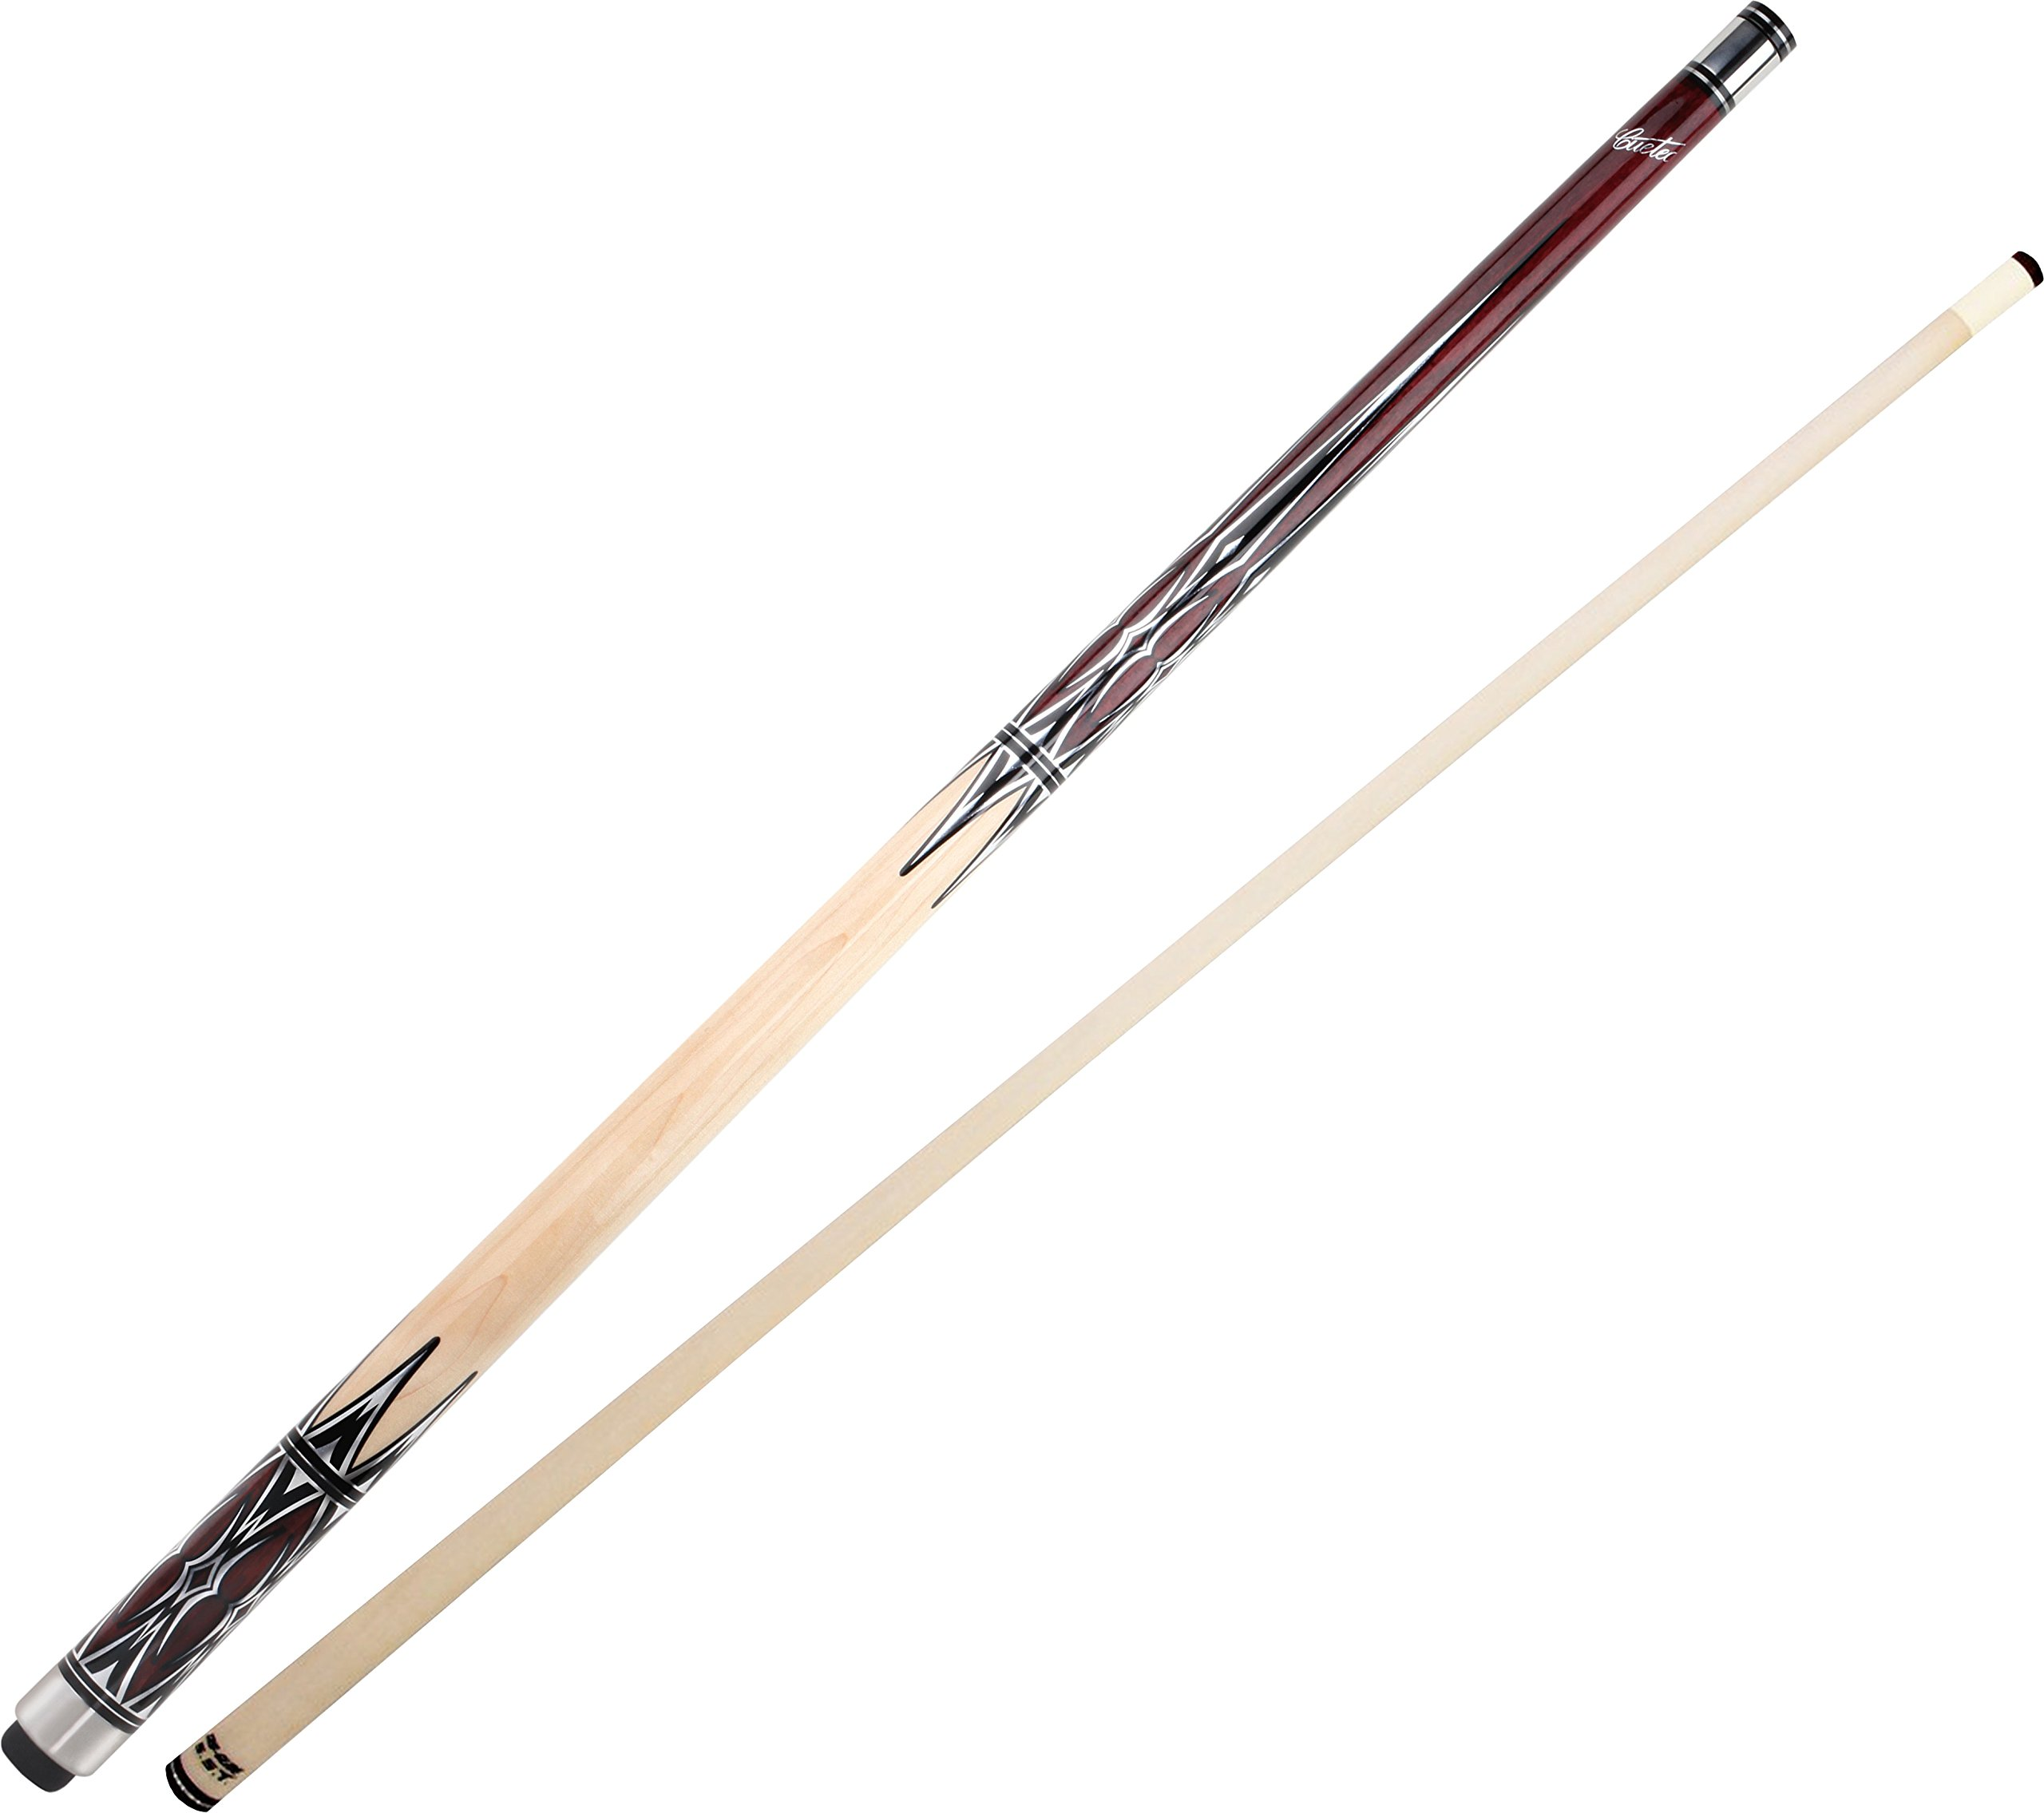 Cuetec Natural Series 58'' 2-Piece Canadian Maple Billiard/Pool Cue, Unwrapped, Brown Stain by Cuetec